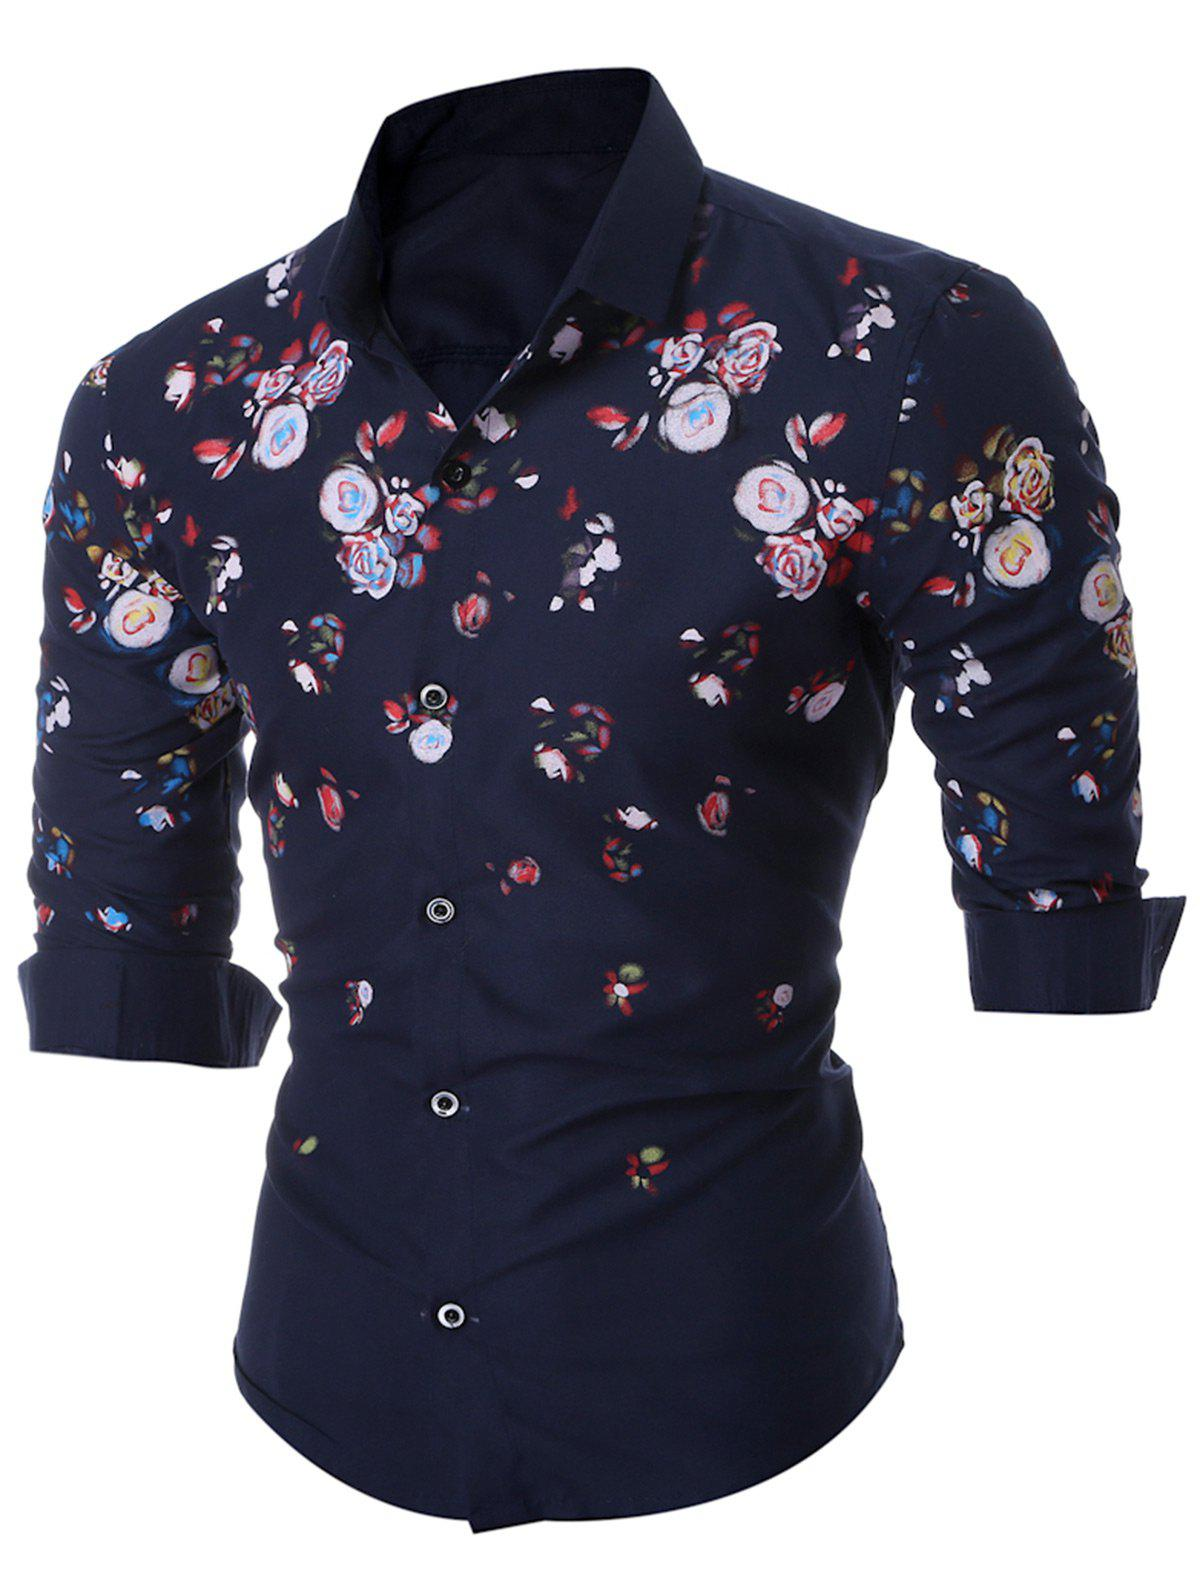 Floral Patterned Long Sleeve Shirt